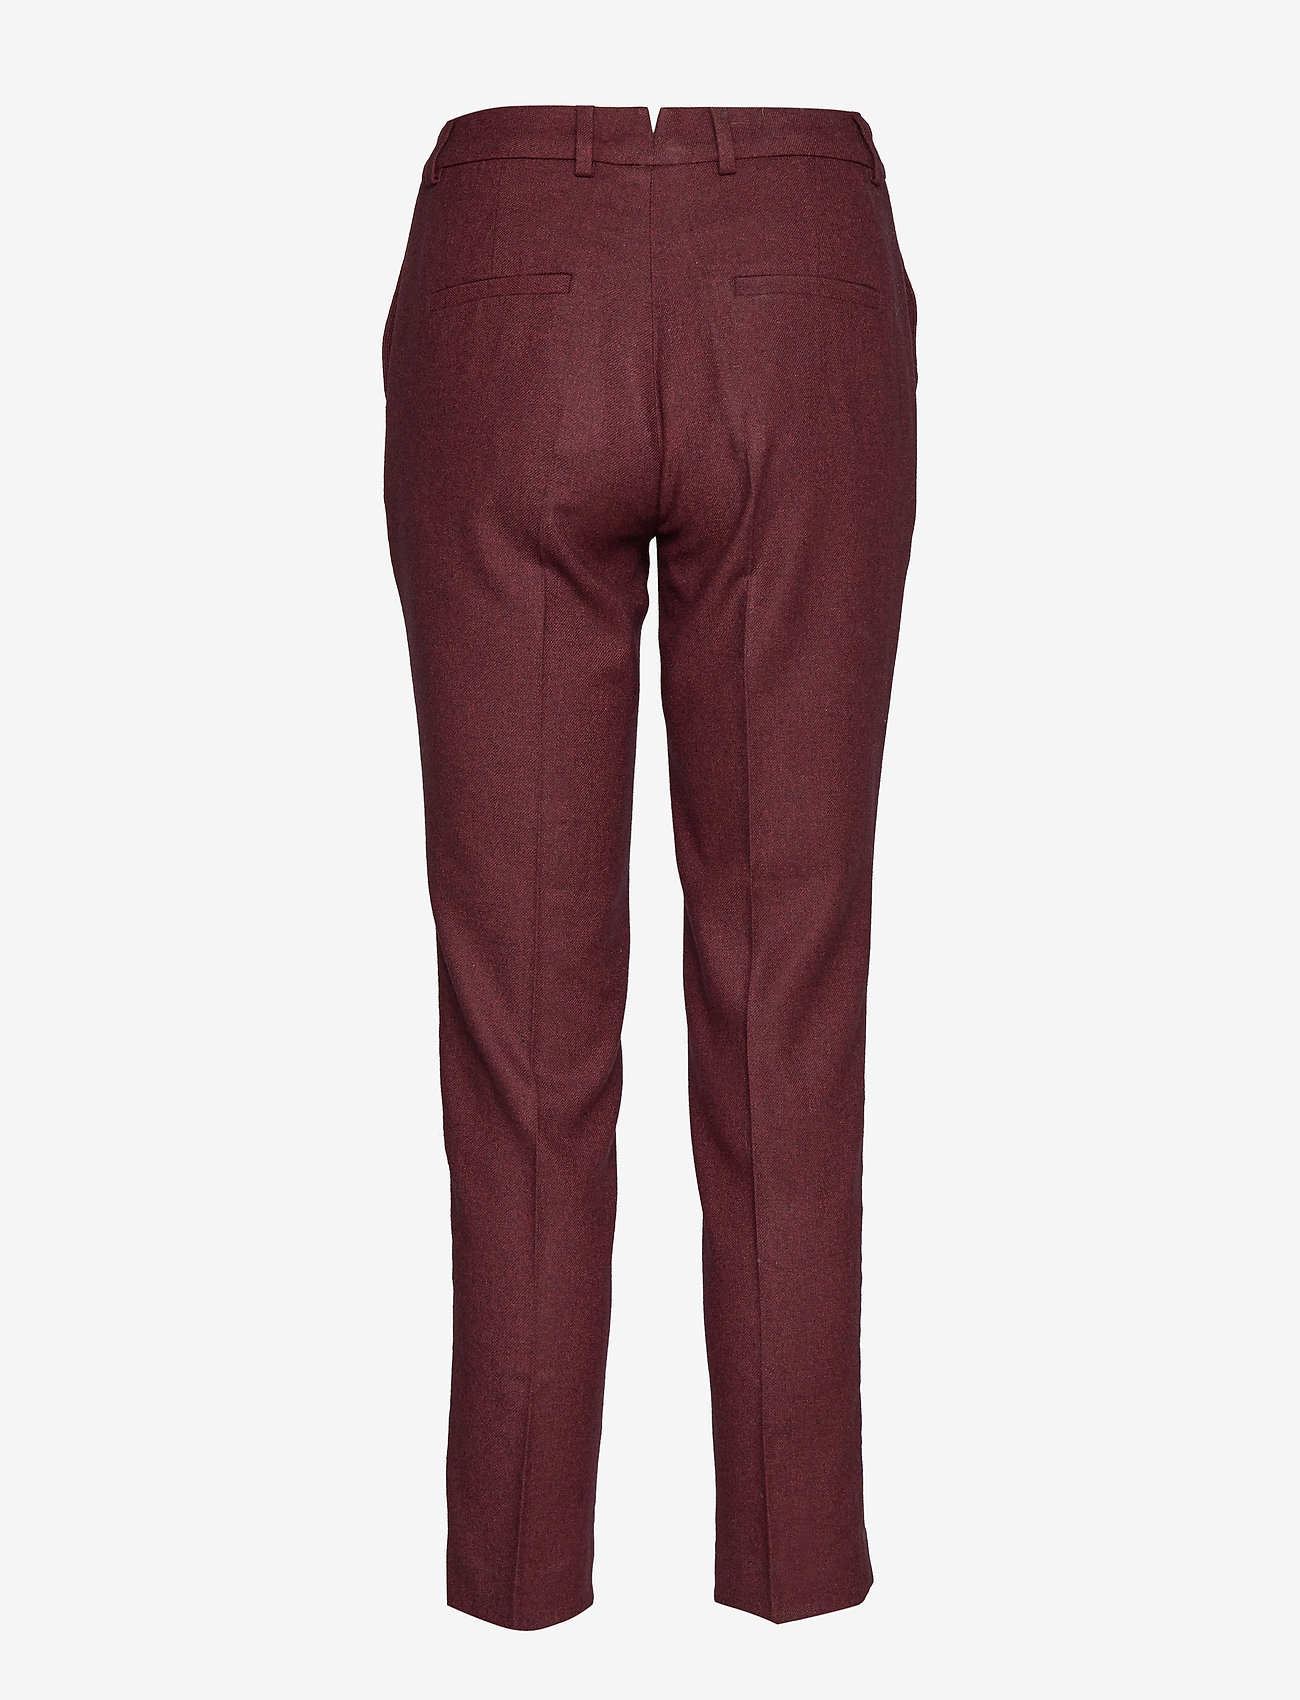 Gant D1. Washable Str Wool Tapered Pant - Byxor Mahogny Red